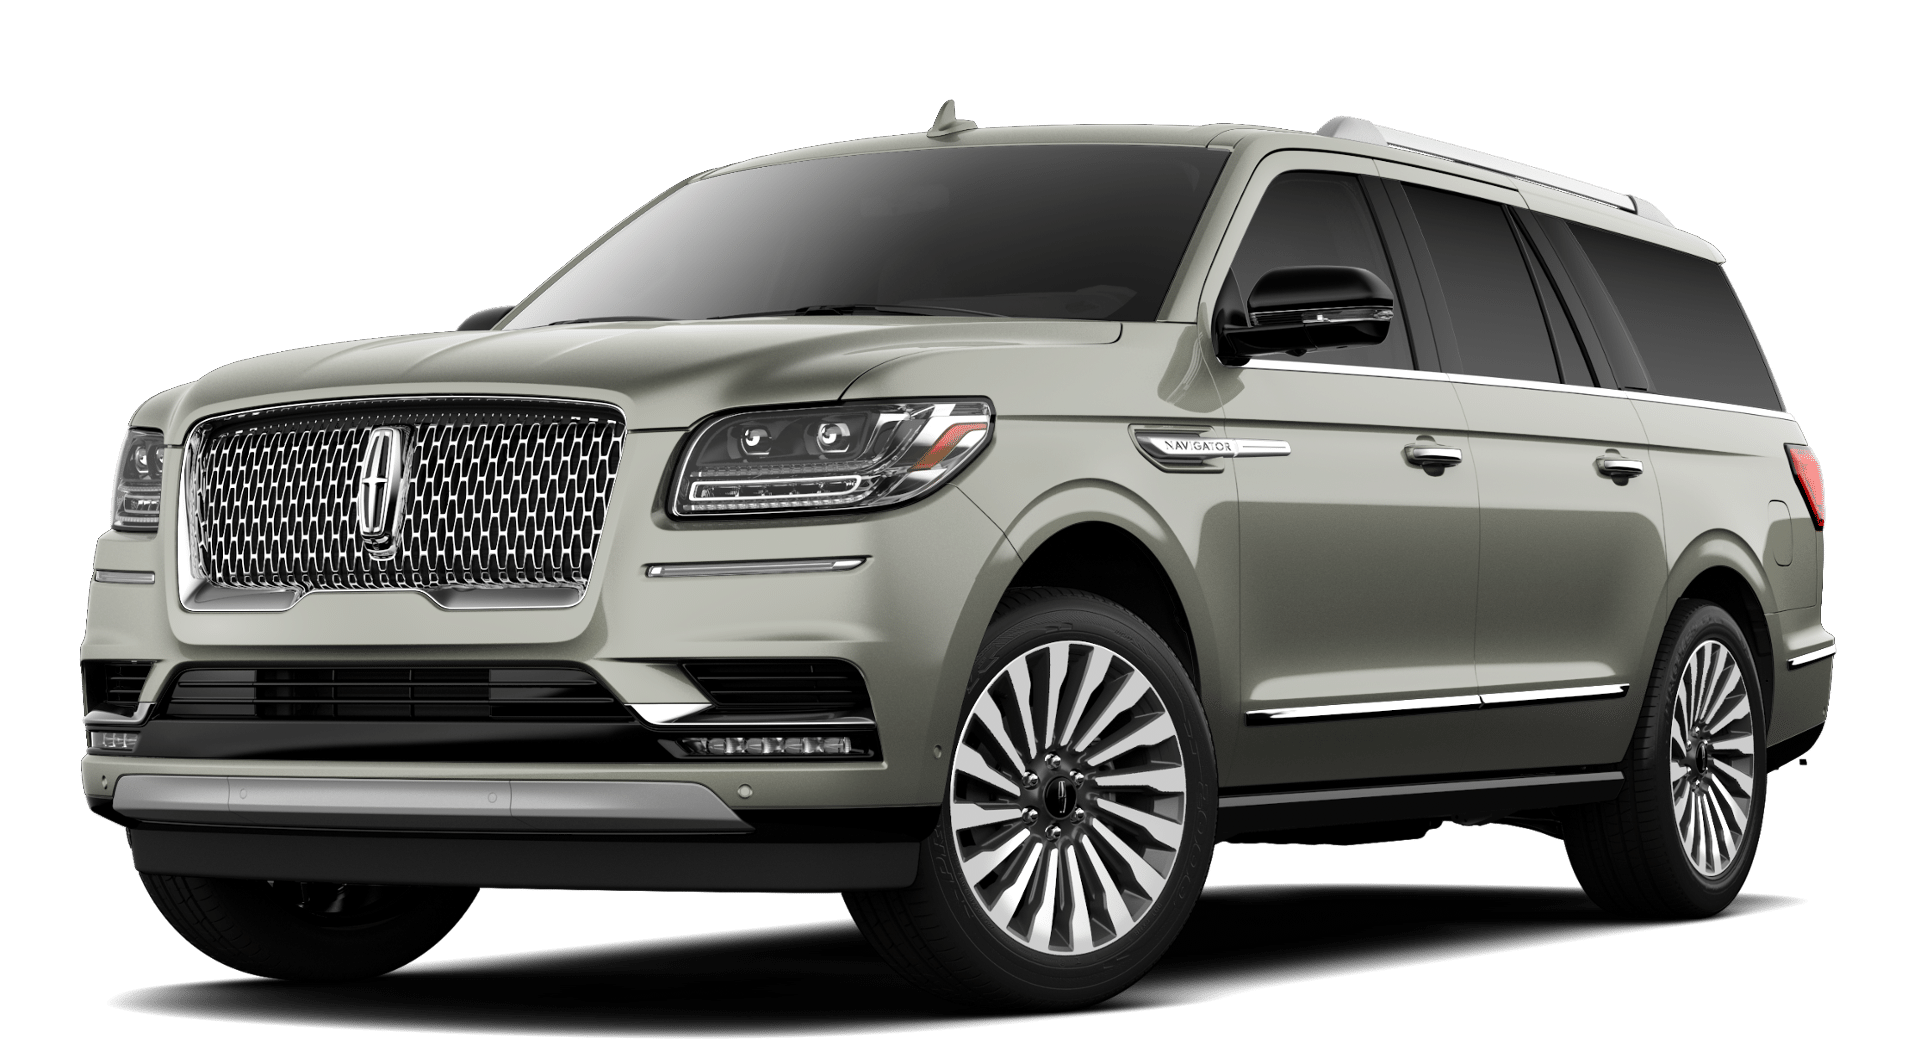 2019 Lincoln Navigator Reserve L Silver Jade Exterior Front Picture.png